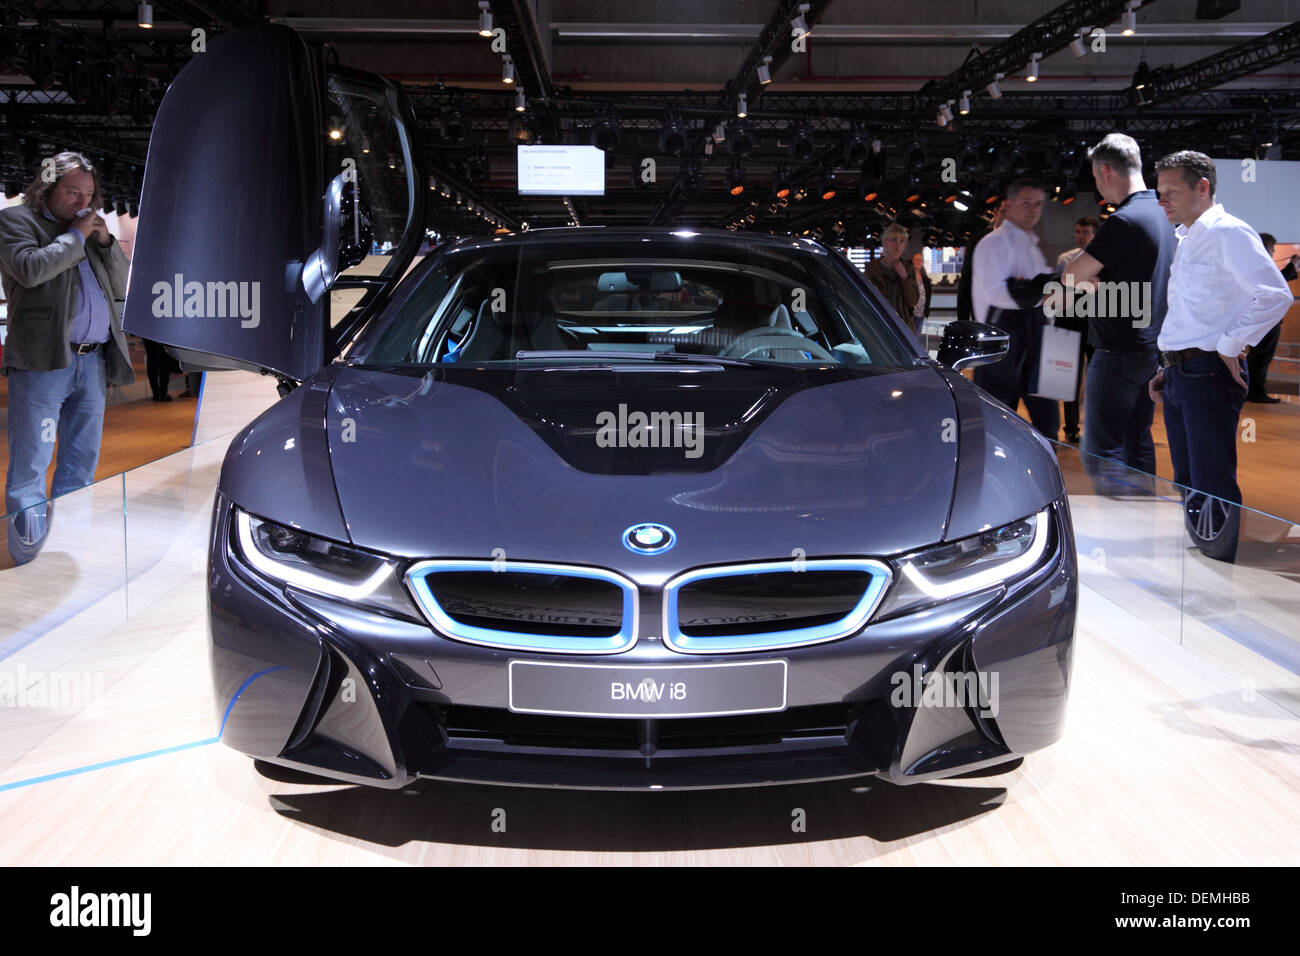 Attirant BMW I8 Electric Car At The 65th IAA In Frankfurt, Germany